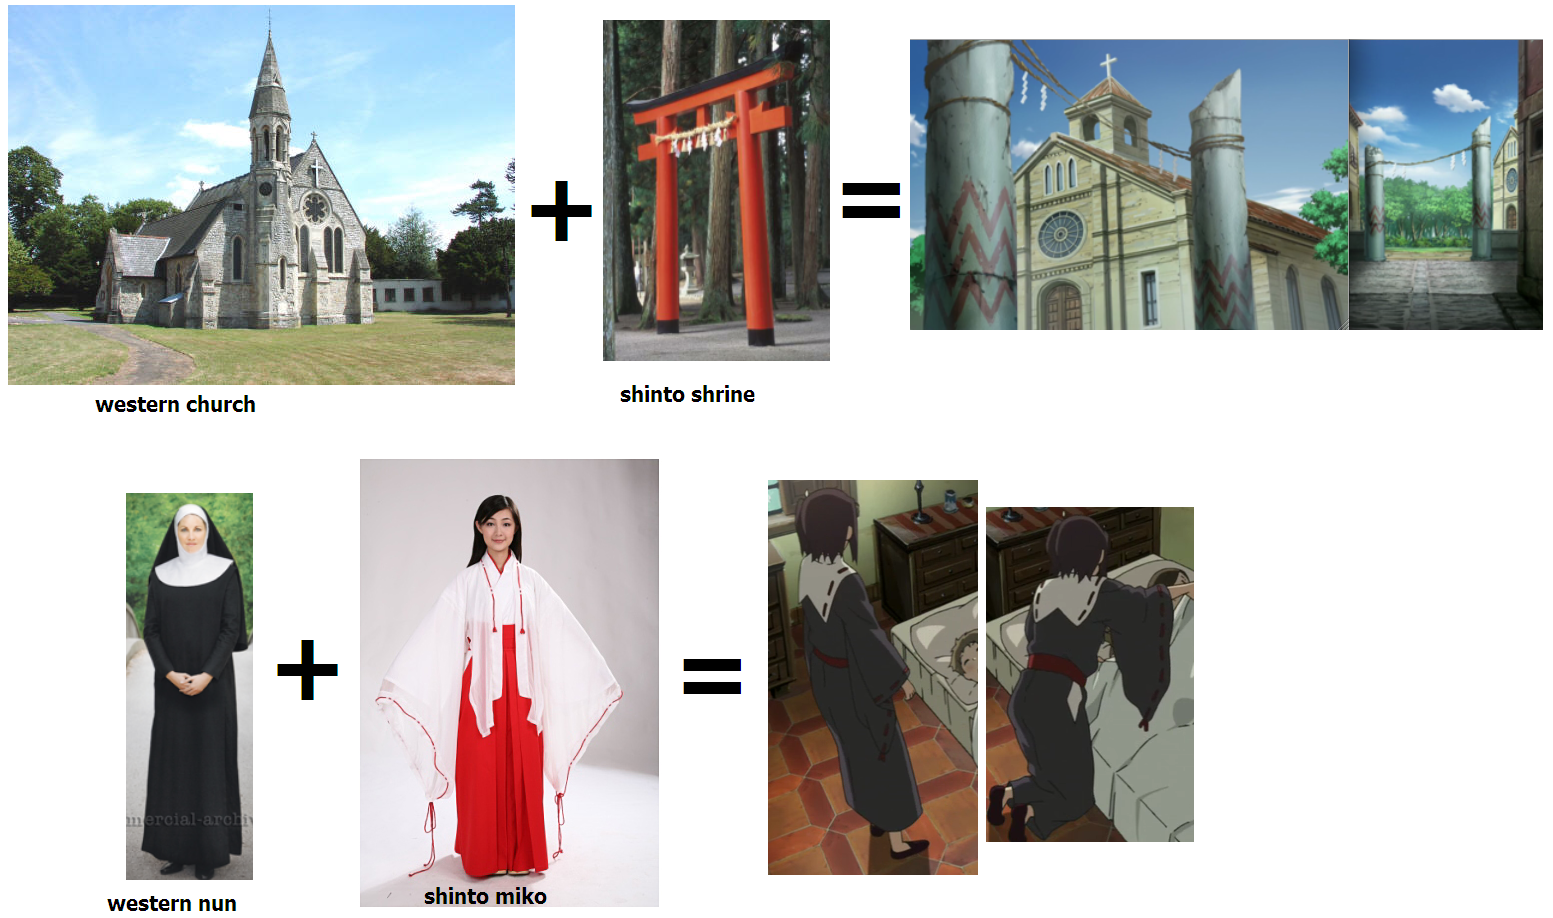 shintoism and christianity